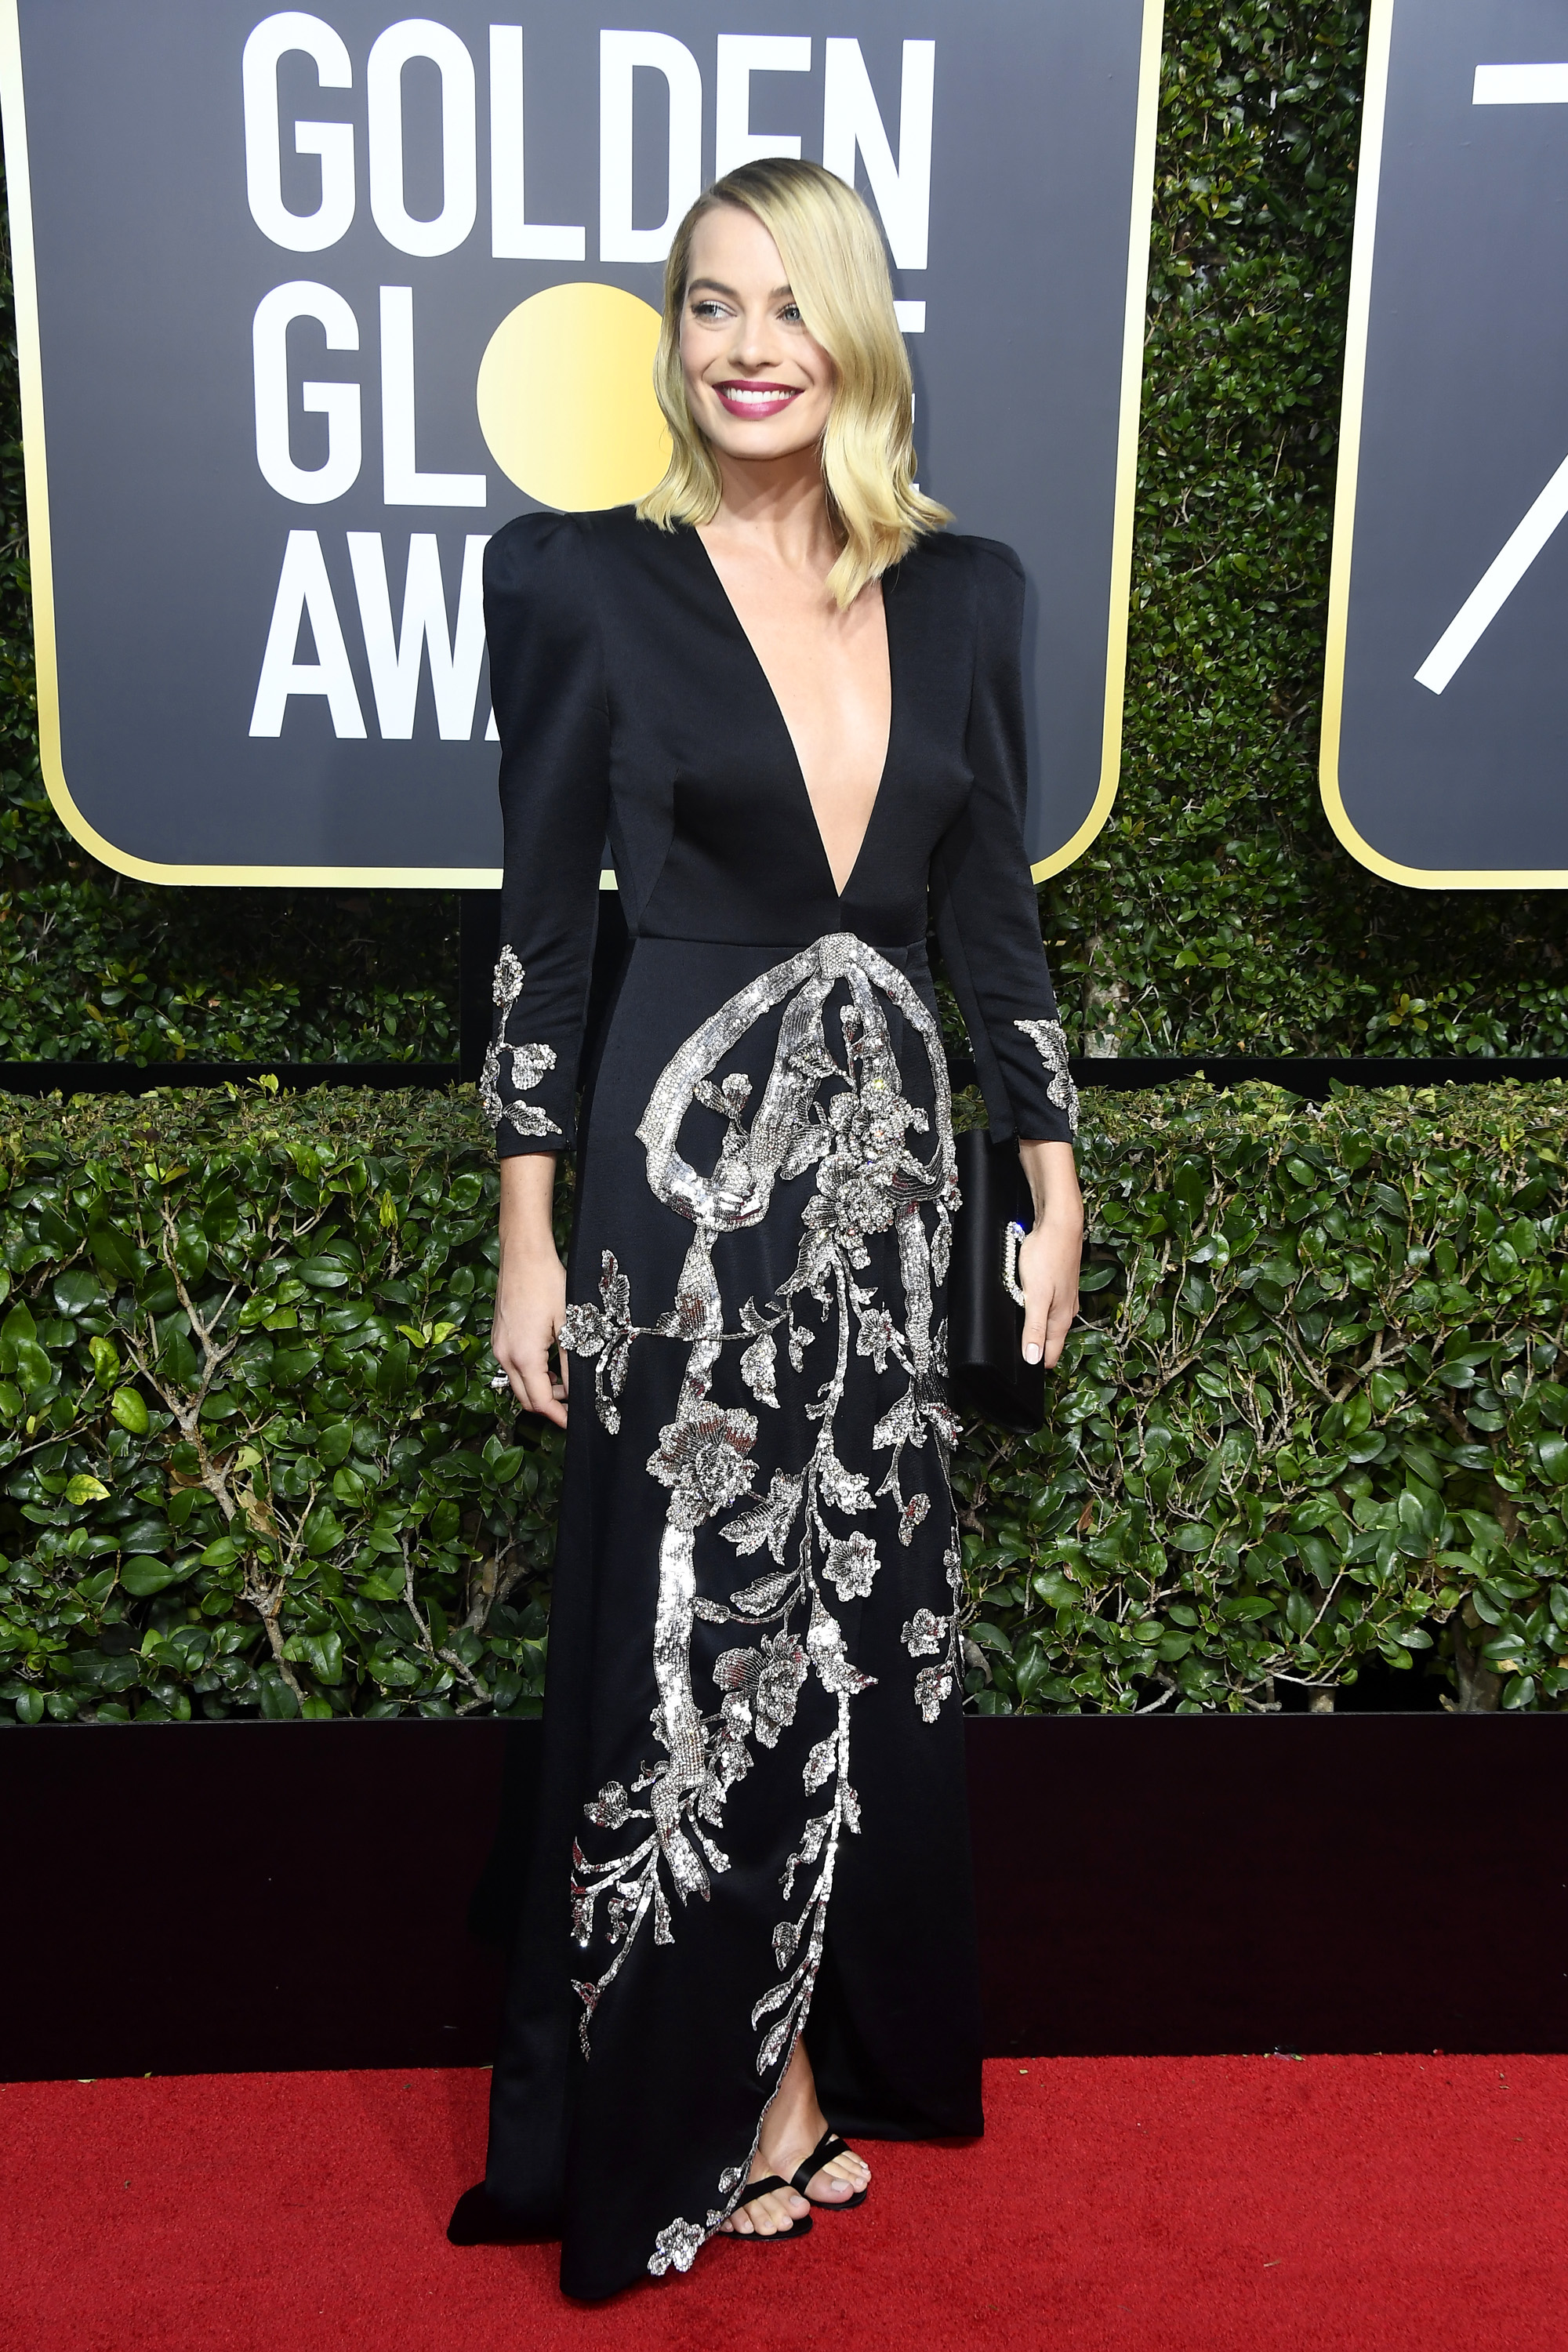 BEVERLY HILLS, CA - JANUARY 07:  Actor Margot Robbie attends The 75th Annual Golden Globe Awards at The Beverly Hilton Hotel on January 7, 2018 in Beverly Hills, California.  (Photo by Frazer Harrison/Getty Images)